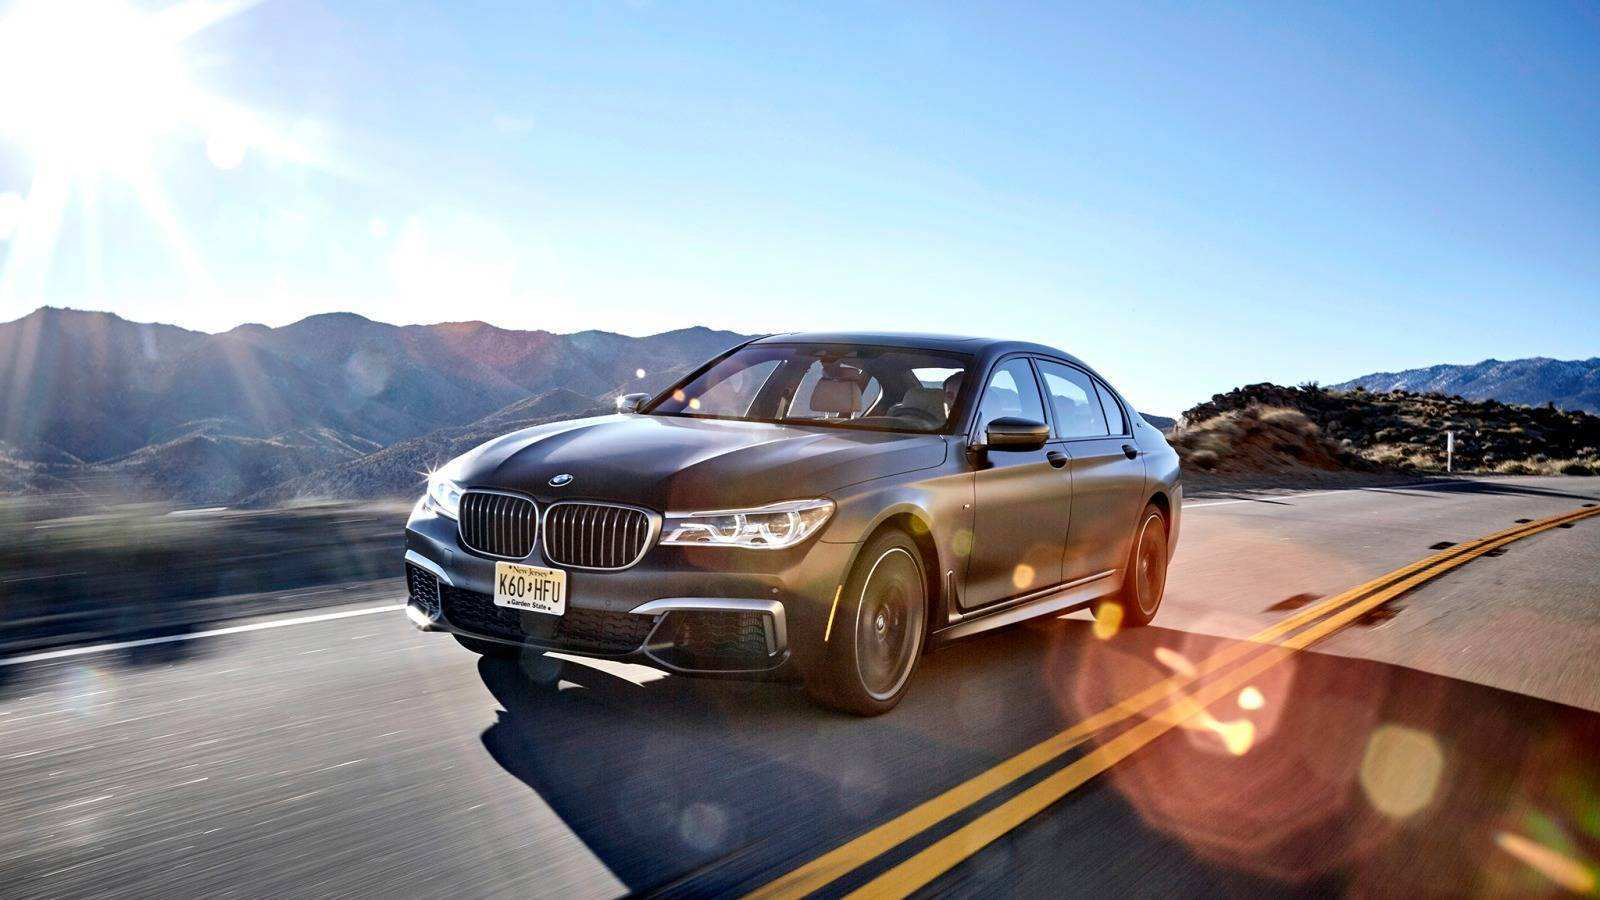 71 Gallery of 2019 Bmw 7 Series Configurations Redesign by 2019 Bmw 7 Series Configurations